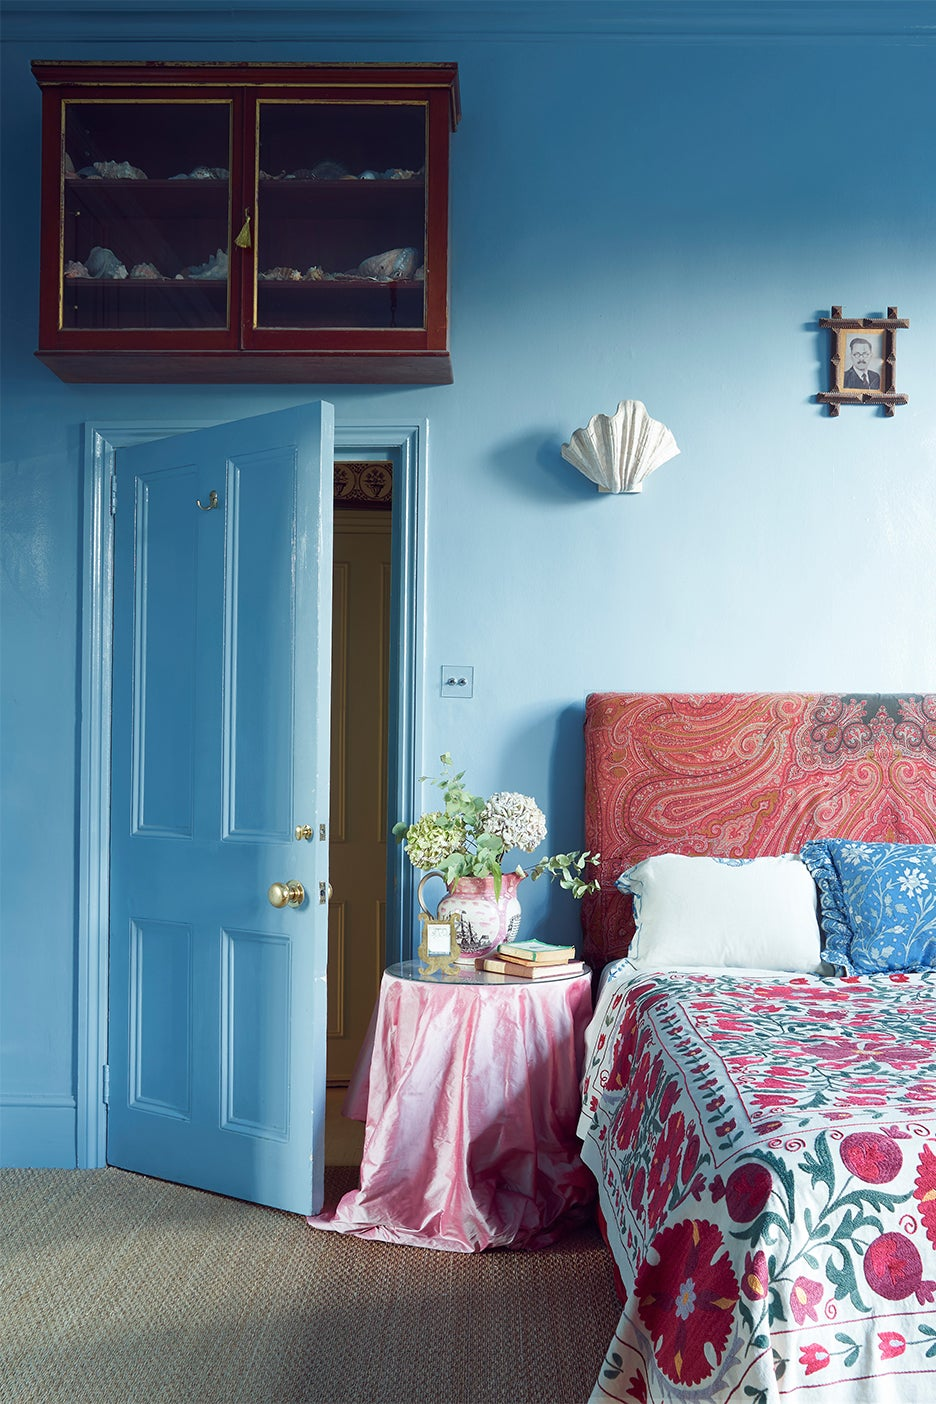 Red headboard in blue bedroom